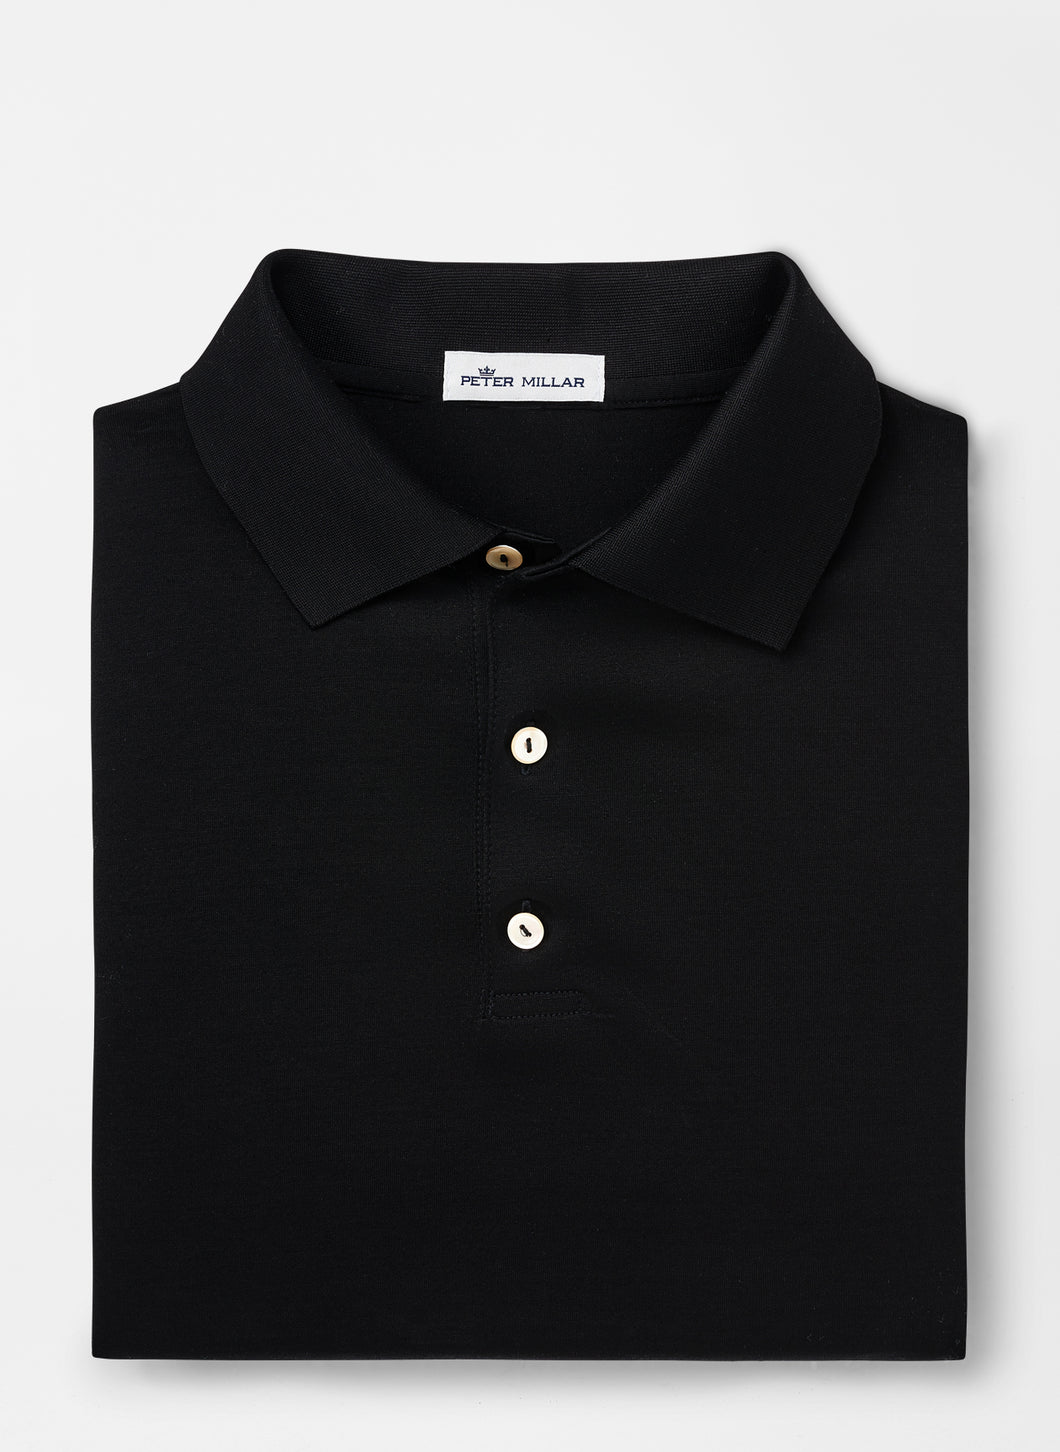 Peter Millar Solid Mercerized Cotton Polo in Black